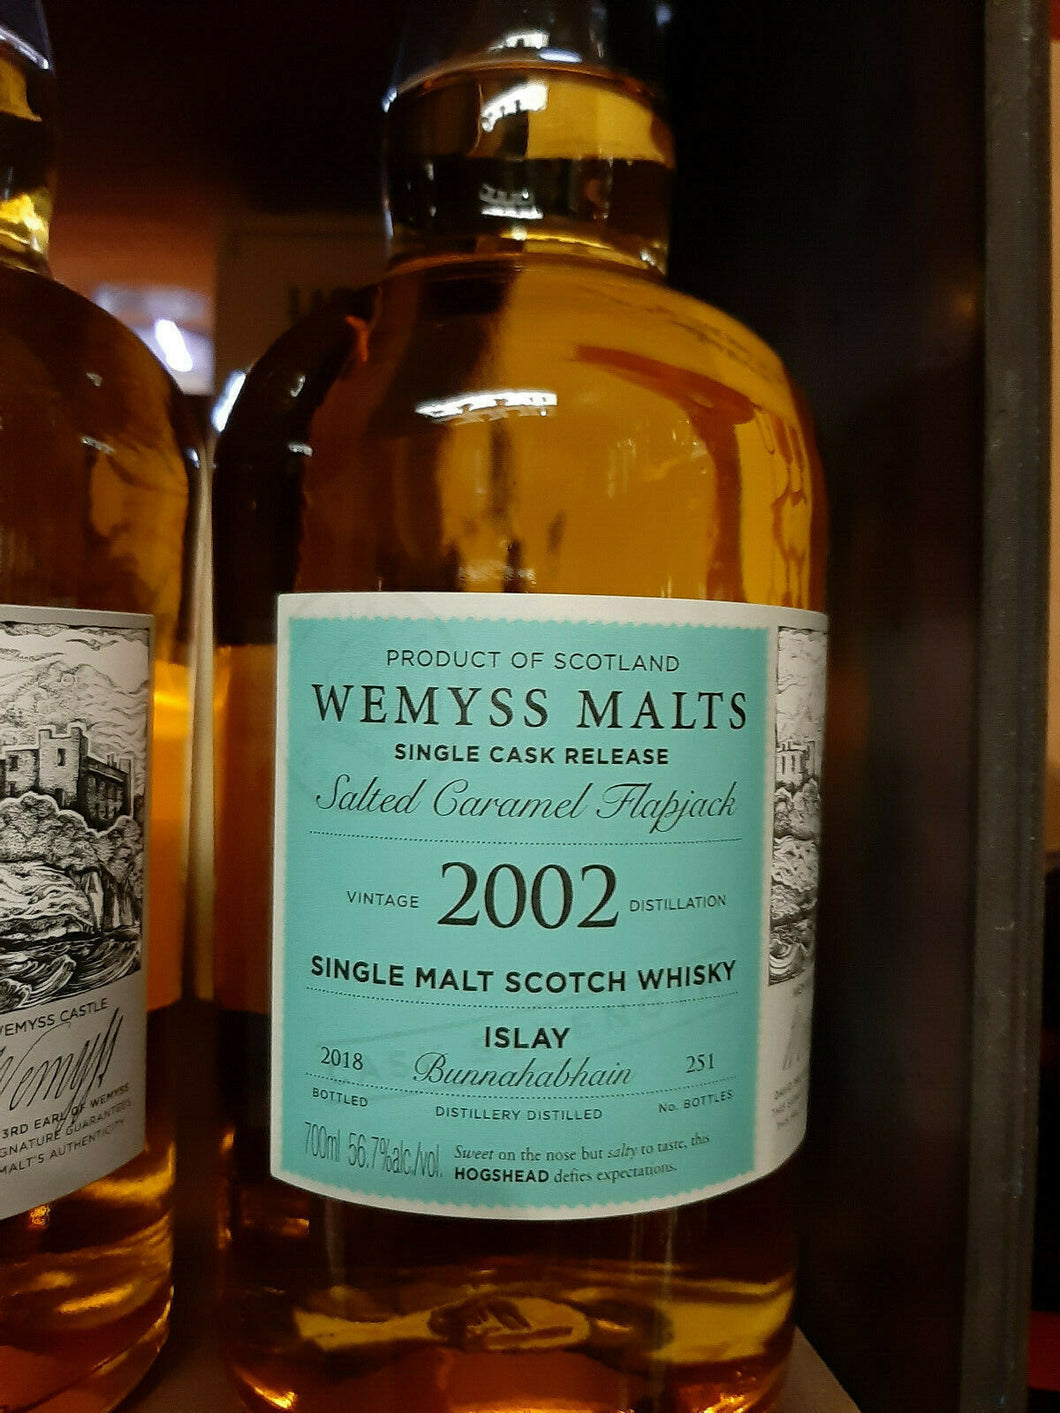 Wemyss Bunnahabhain 2002 Single Malt Scotch Whisky 16 Jahre 56,7 % vol. -  NEU